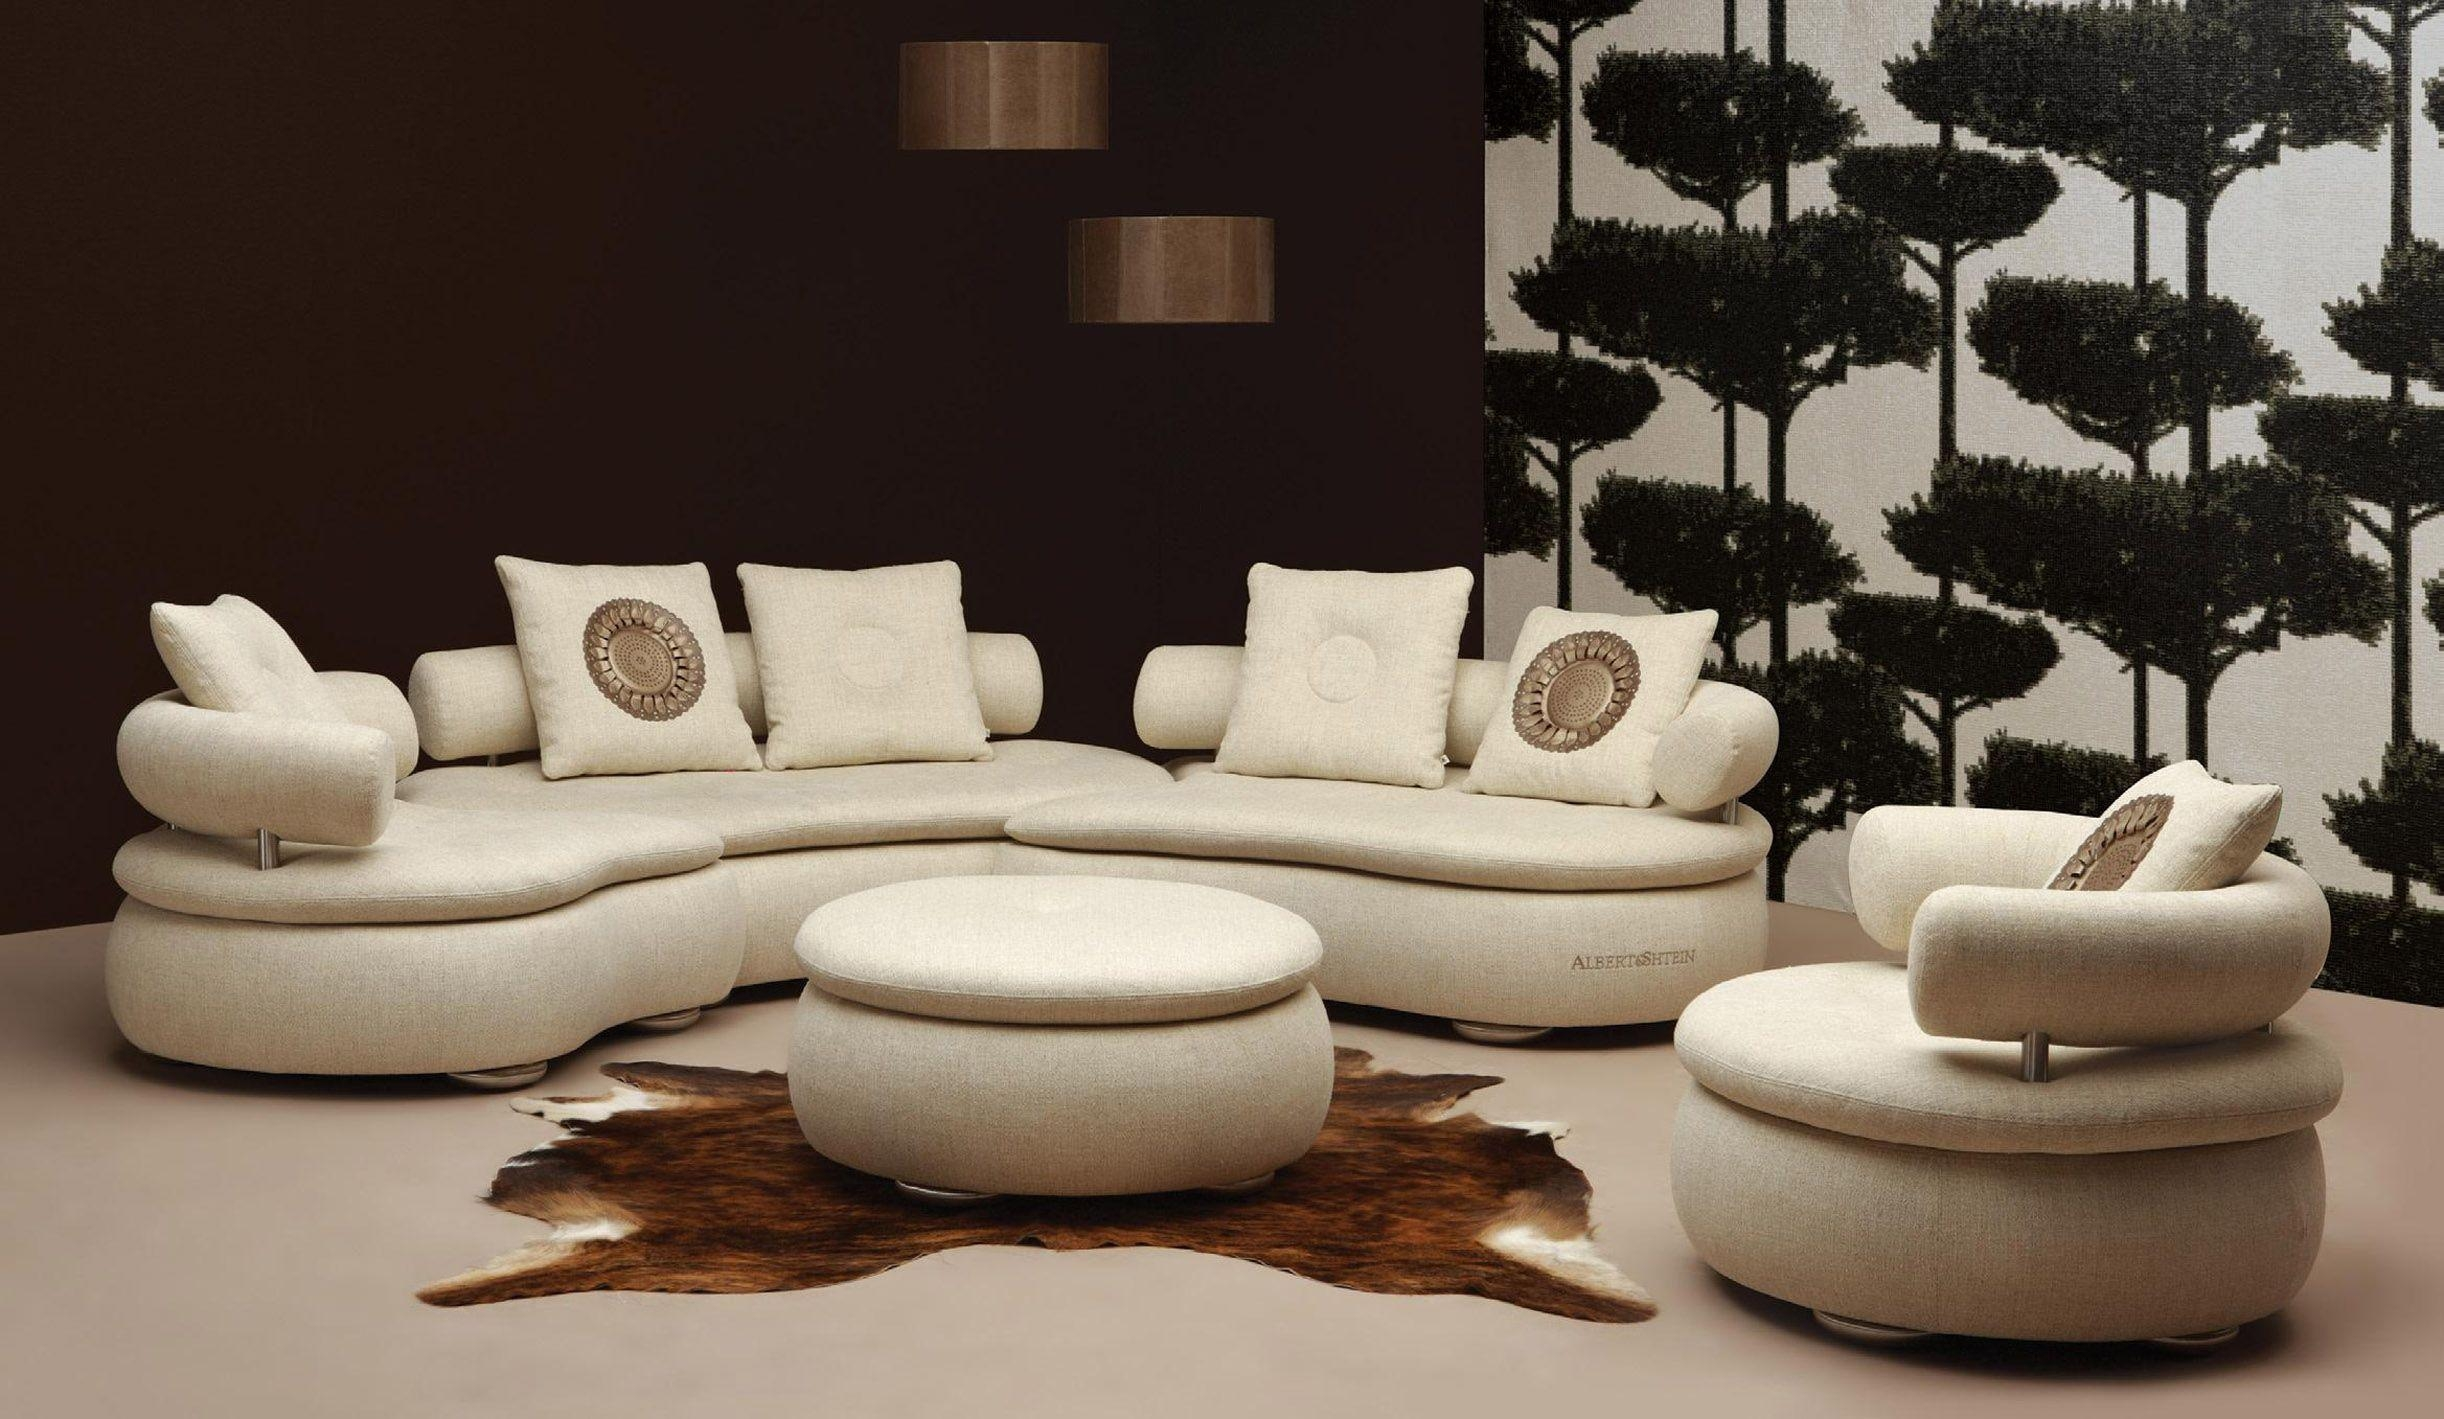 Round Sectional Sofa For Unique Seating Alternative – Traba Homes Intended For Round Sofas (View 12 of 20)